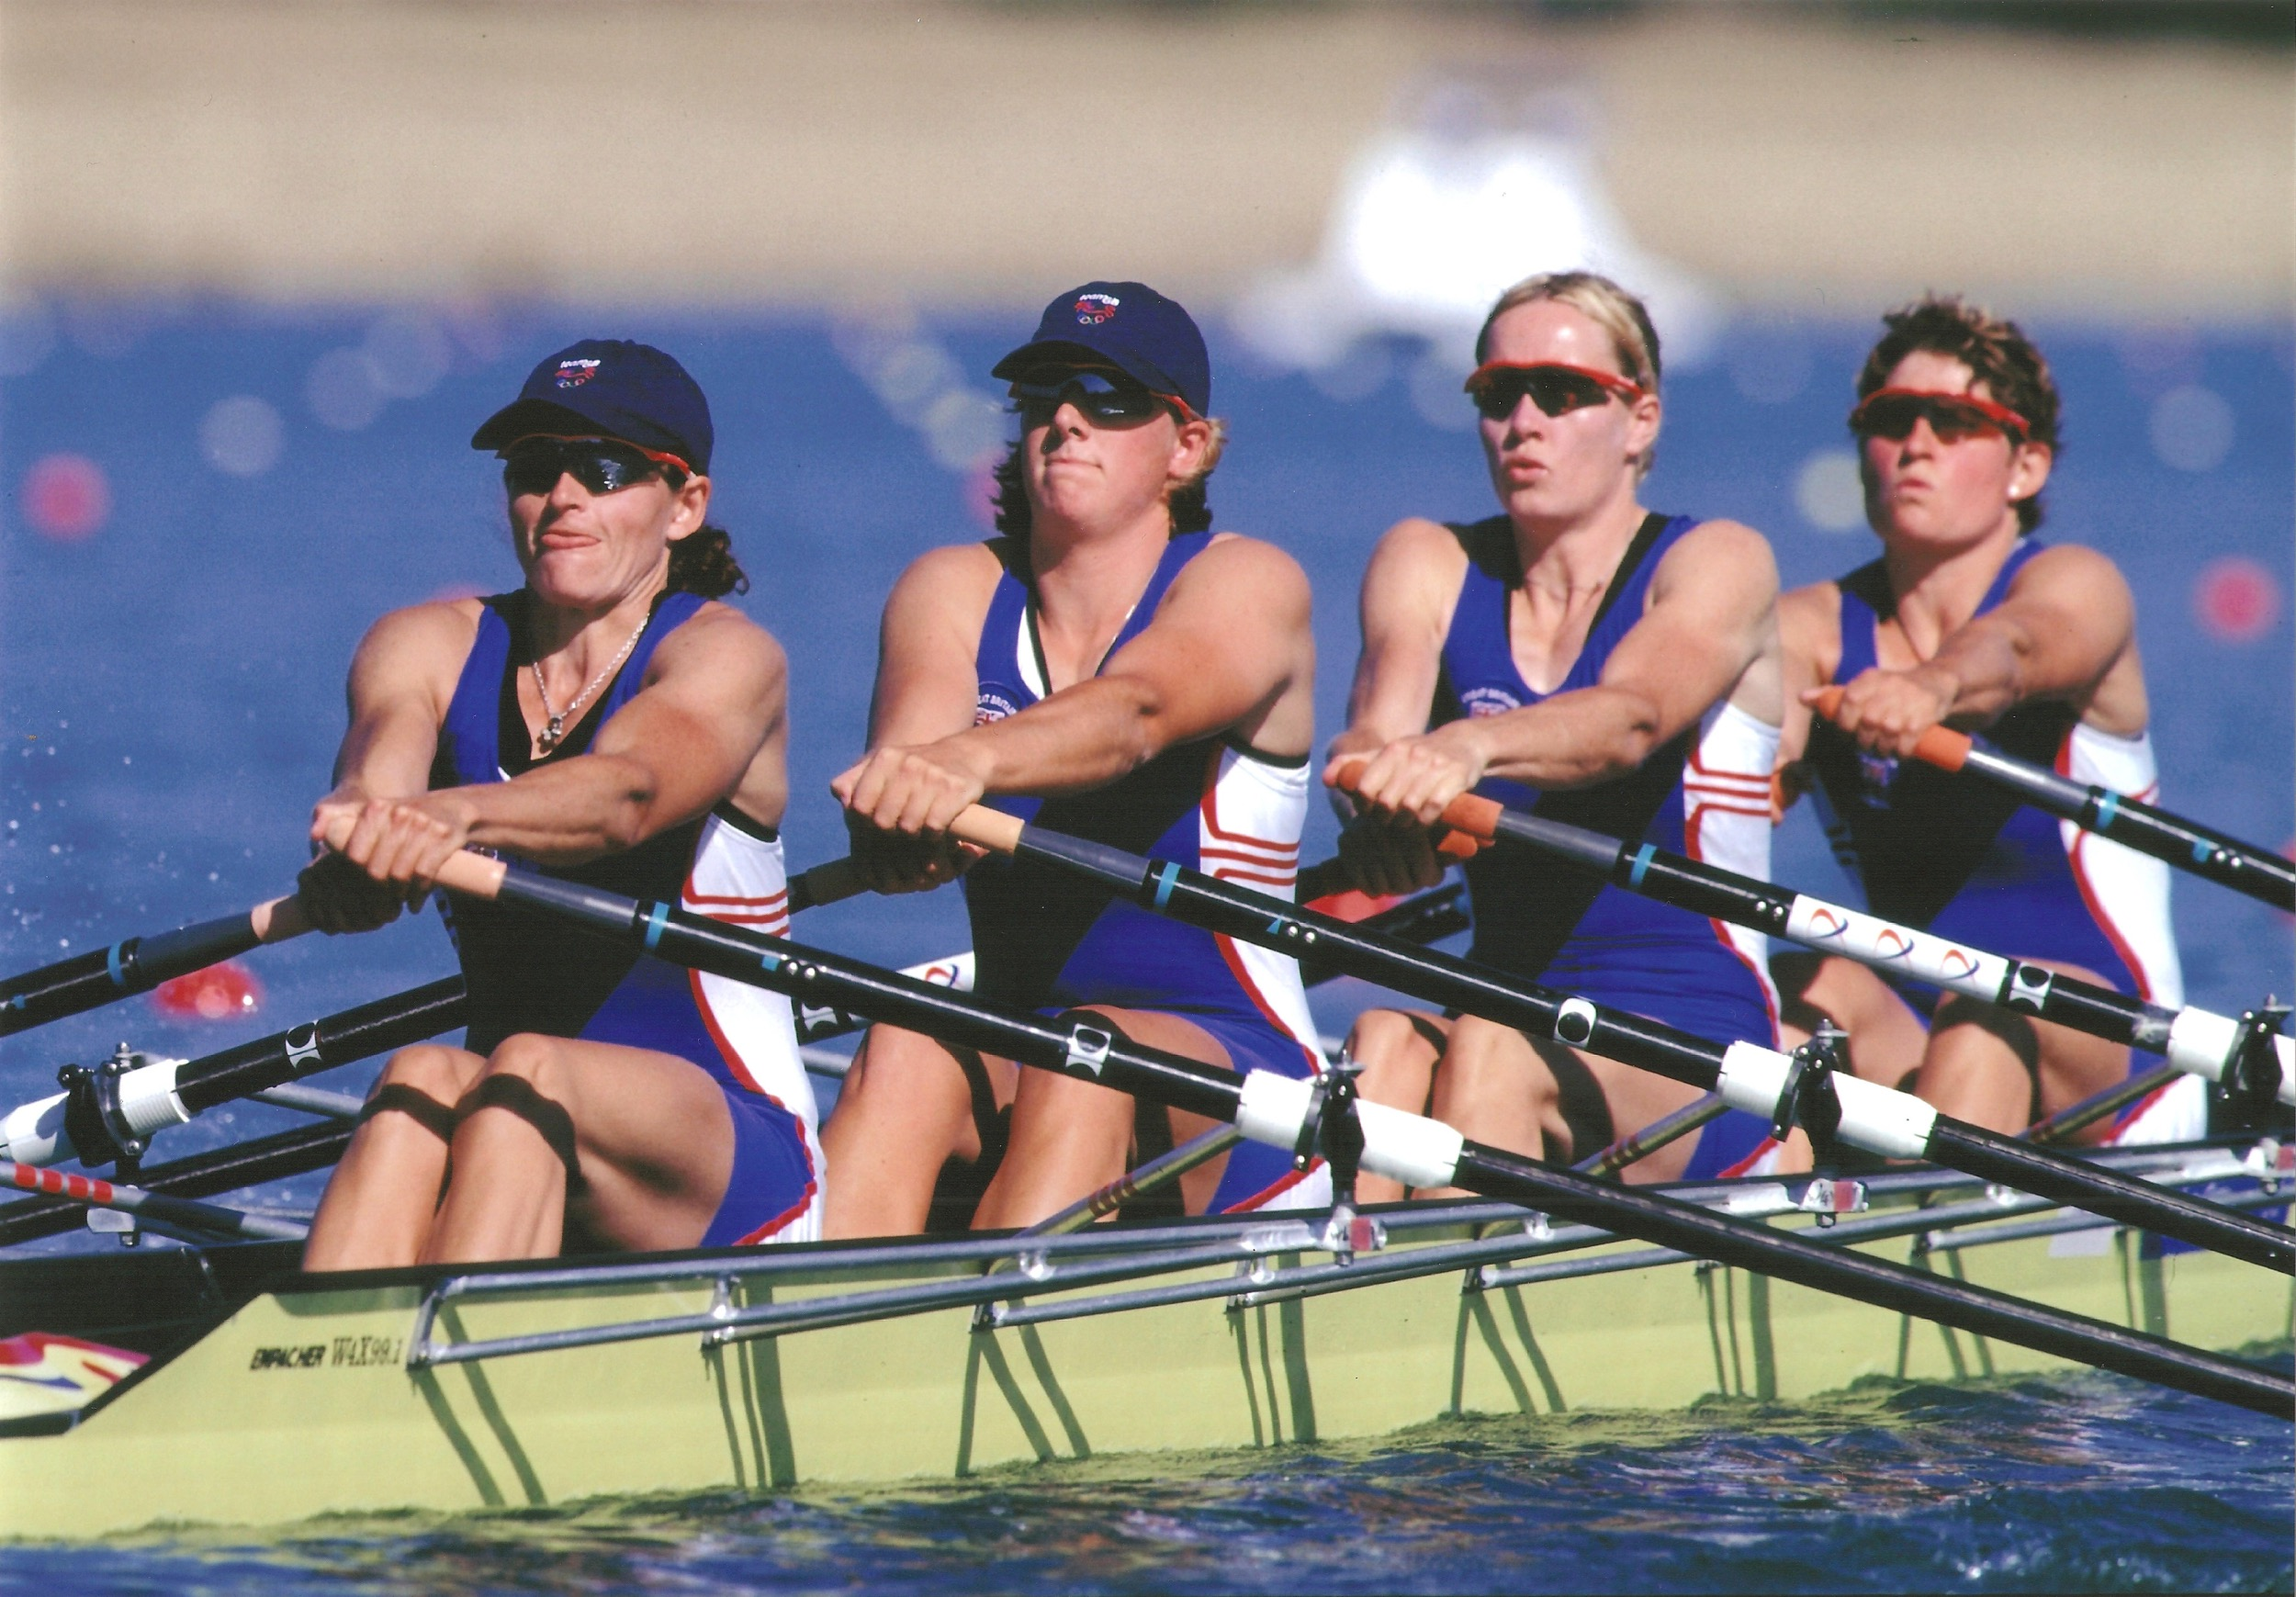 GB W4x, Sydney 2000 Olympic Games